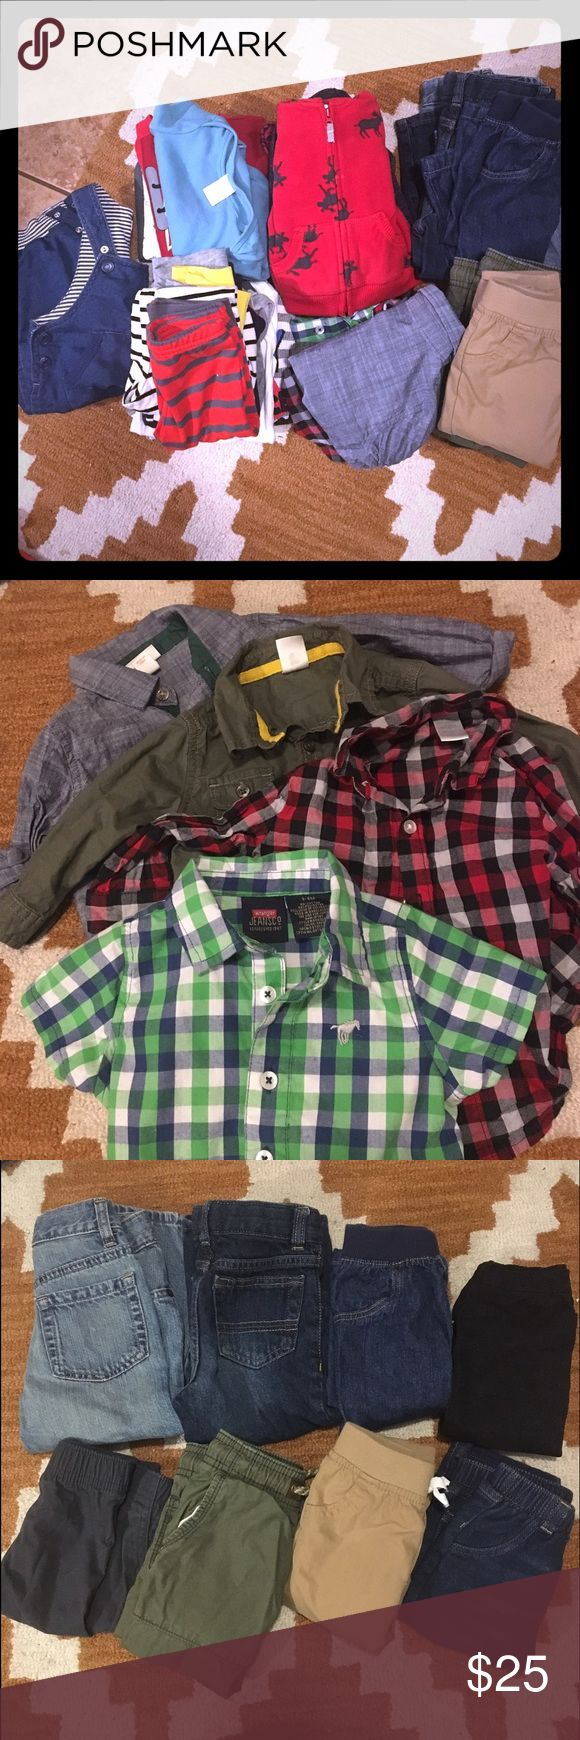 30 Pieces - Baby Boy Clothes - 3m - 2T 30 pieces of baby boy clothes. Most sizes are 3 to 12 months. Two of the jeans, a shirt and a comfy pant are a 2T. There are 4 button downs, 3 jackets, 1 vest, 1 overall, 7 onesies/shirts, 1 pajama set, 4 pairs of jeans, 4 pants, 5 sweat/comfy pants. Many brands - Oldnavy, Carters, Hanes, Levi's, Cat & Jack, Wranglers, Children's Place. All in Great condition. No stains, may need some ironing. cat & jack Matching Sets